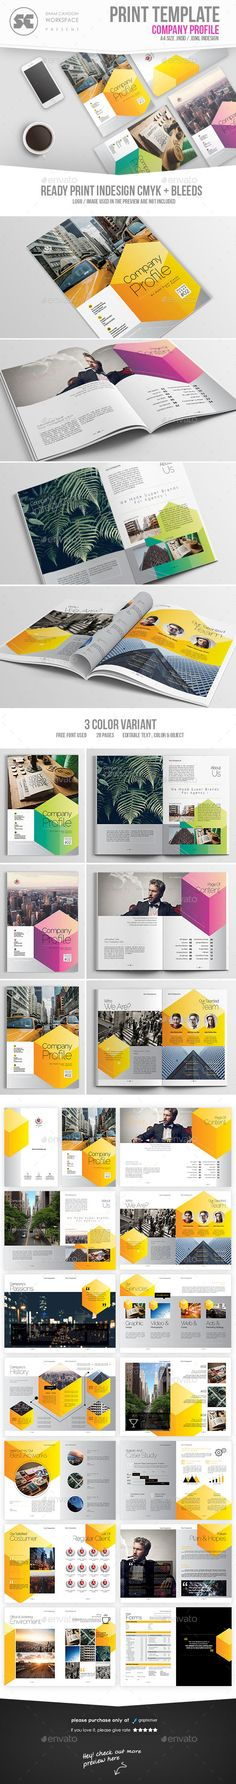 Corporate Brochure Company Profile 1 u2026 Pinteresu2026 - profile company template